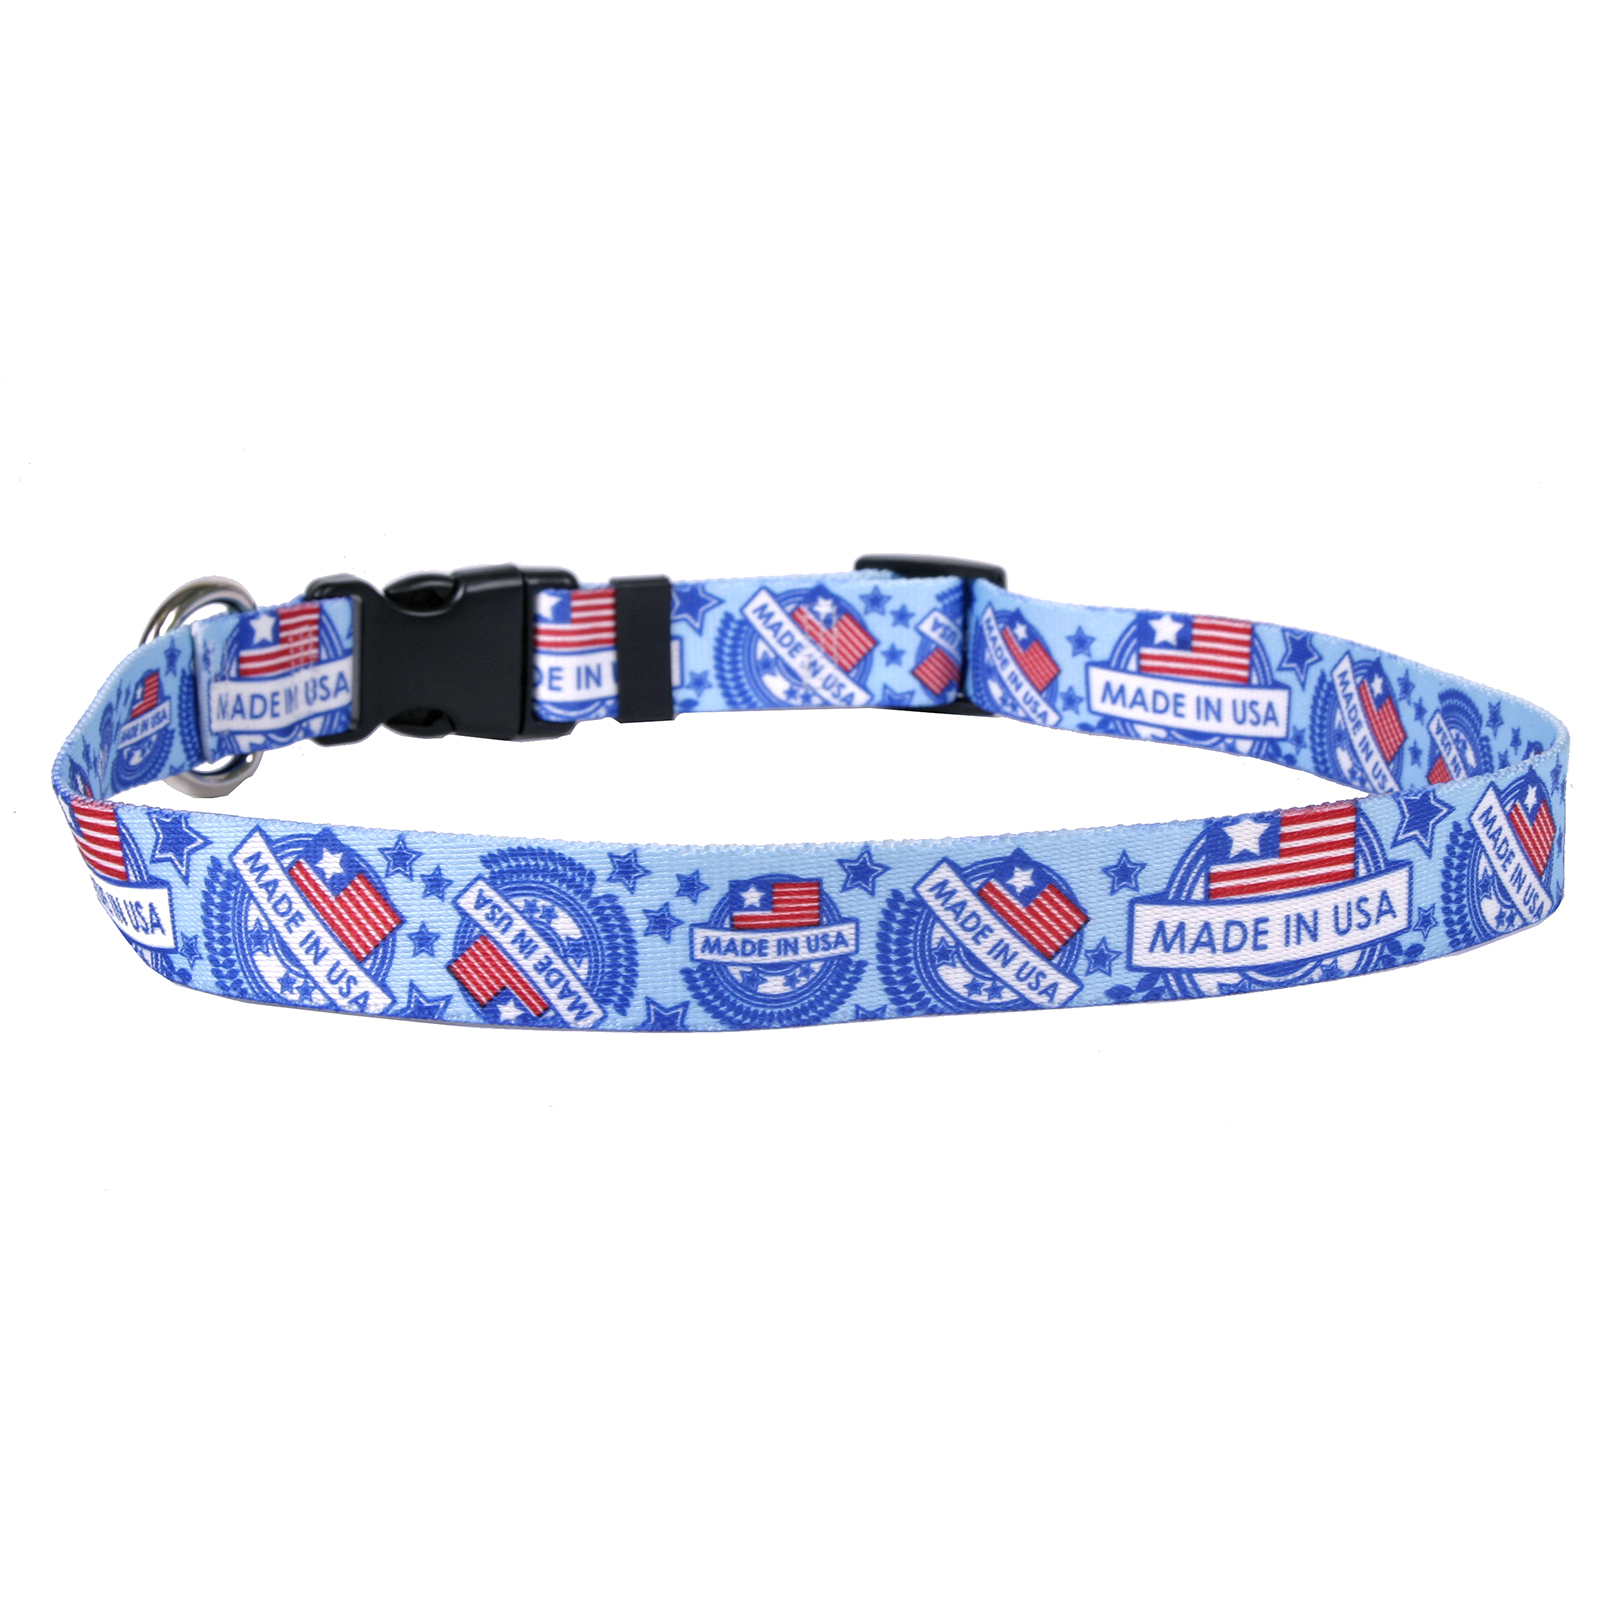 Made in USA Blue Standard Collar